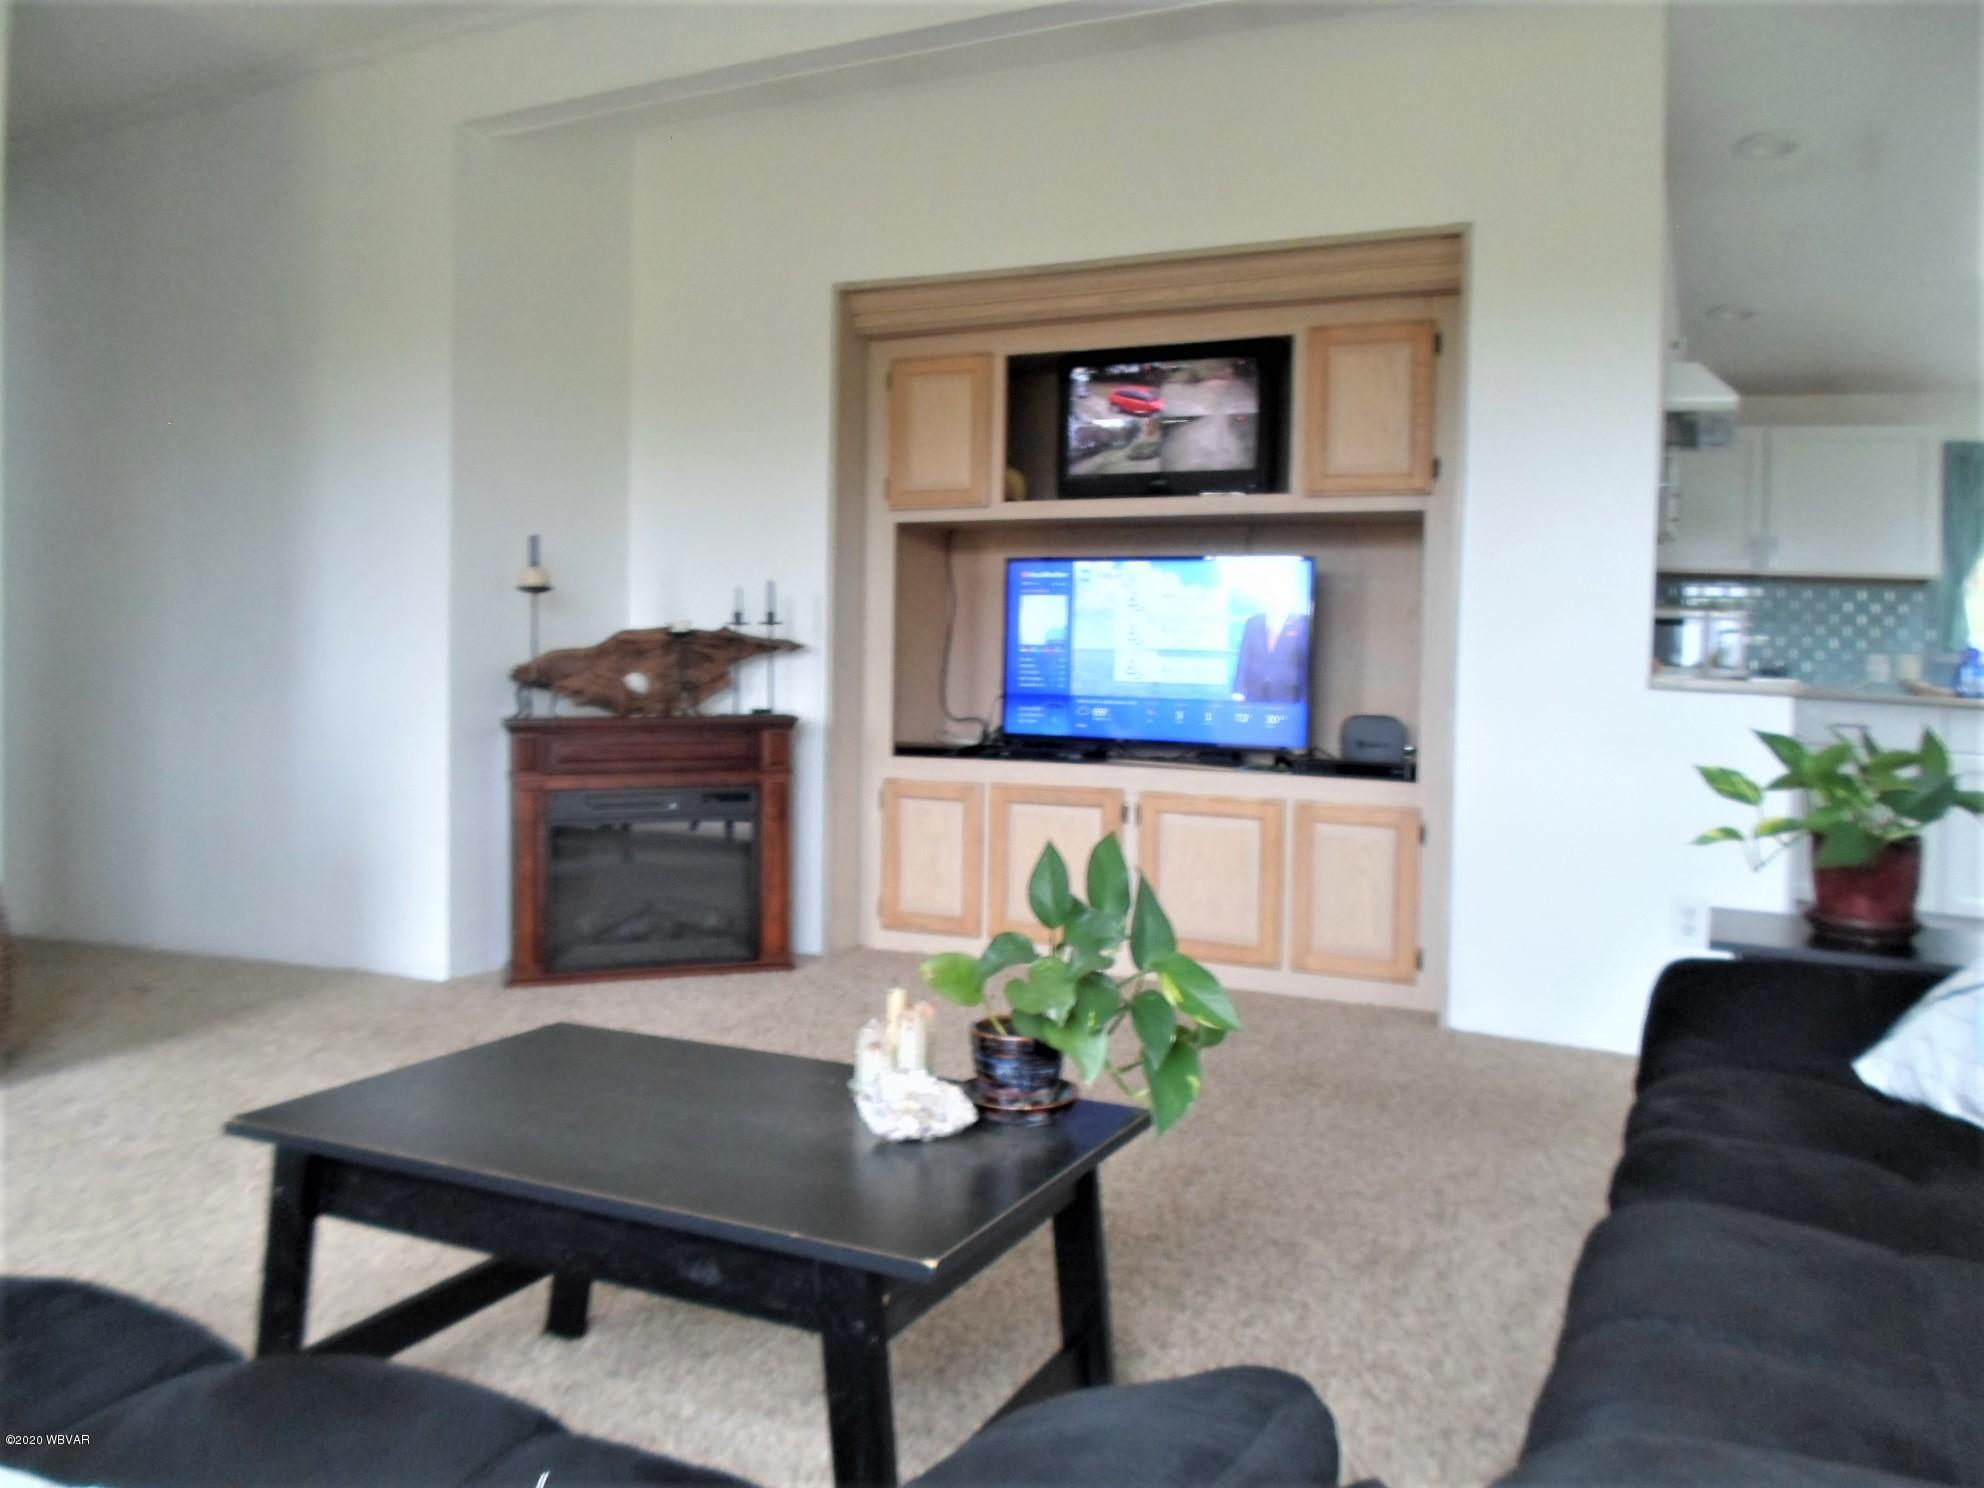 522 COUNTY LINE ROAD, Muncy, PA 17756, 3 Bedrooms Bedrooms, ,2 BathroomsBathrooms,Cabin/vacation home,For sale,COUNTY LINE,WB-91341